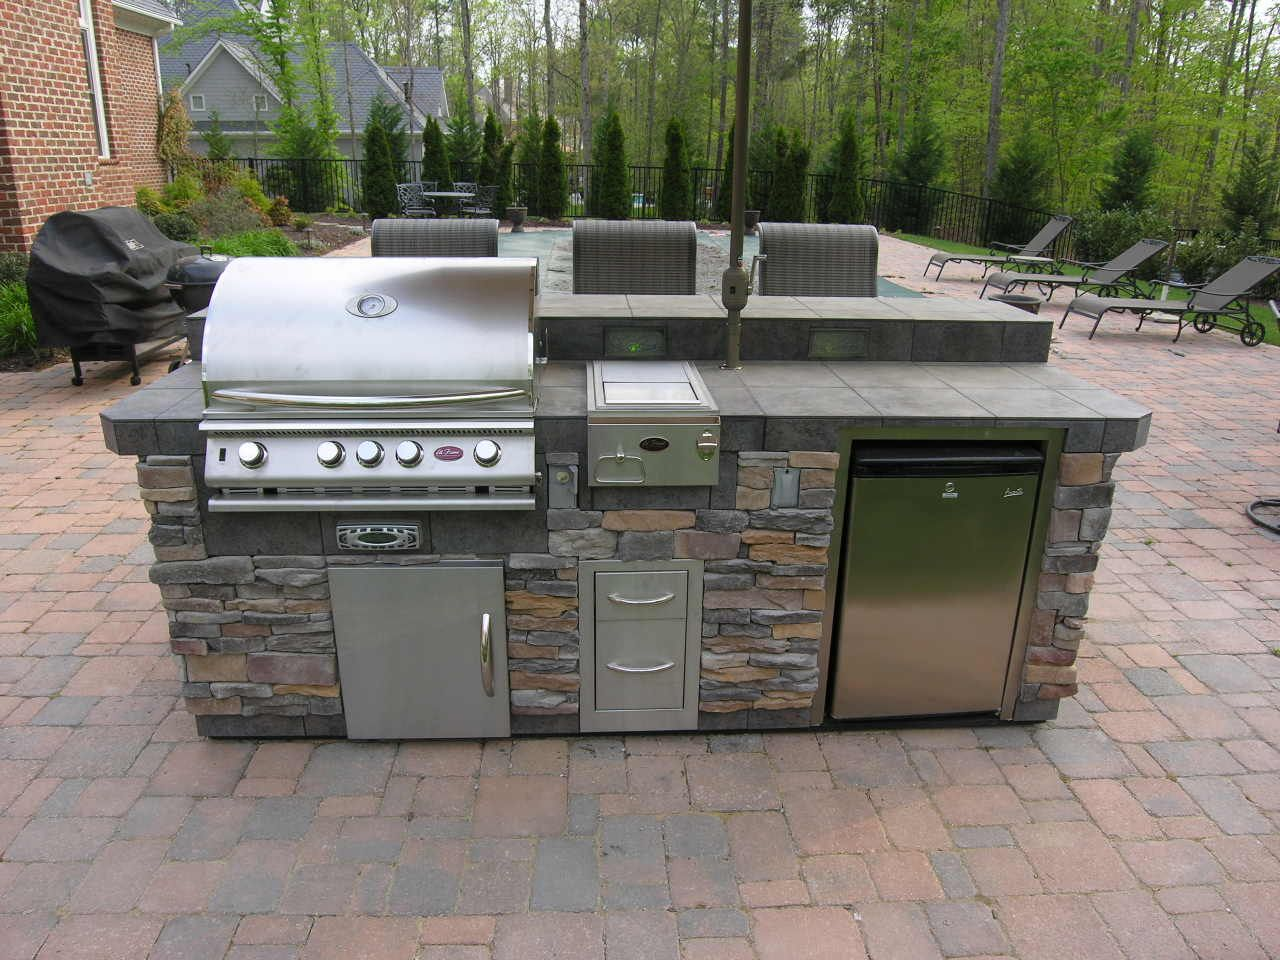 Straight Outdoor Kitchen In Natural Stone Overlooking The Backyard S Pool Area This Cu Modular Outdoor Kitchens Outdoor Kitchen Island Prefab Outdoor Kitchen